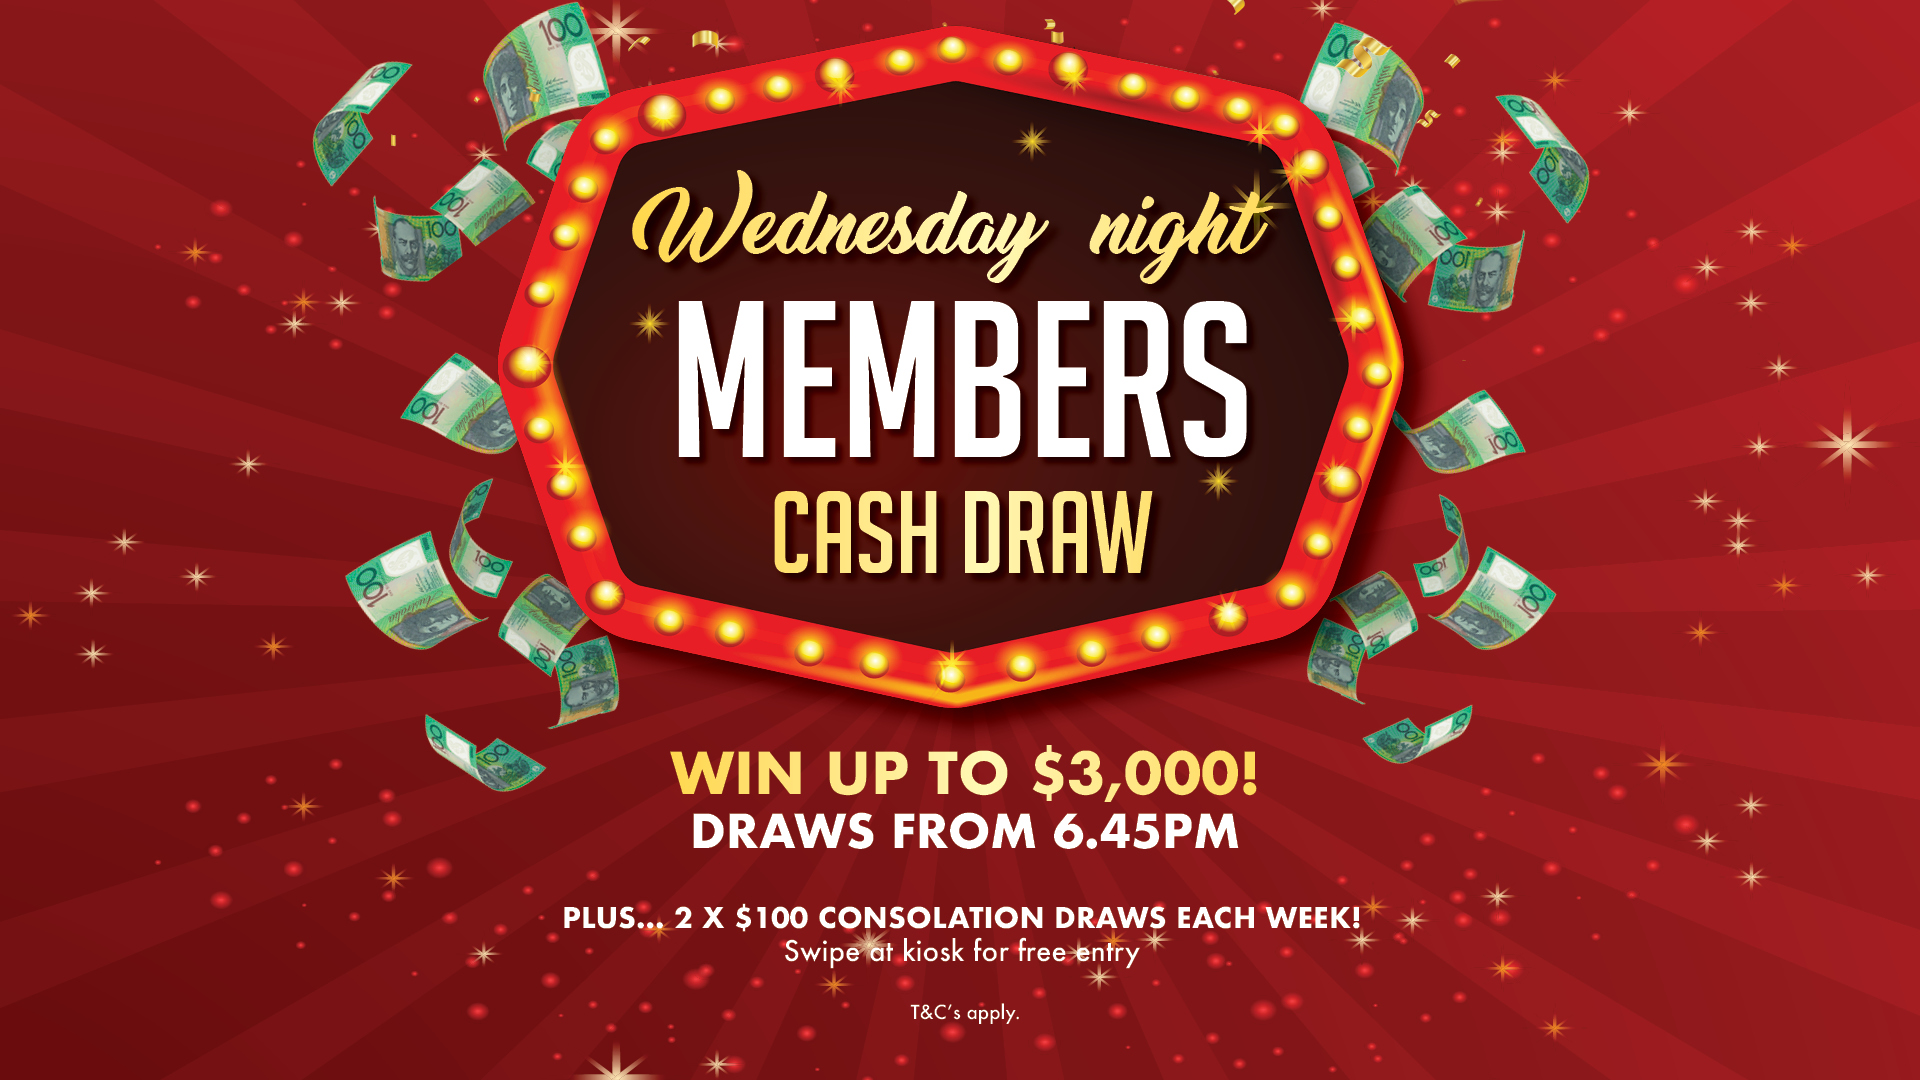 Wednesday Night Members Cash Draw at Gympie RSL